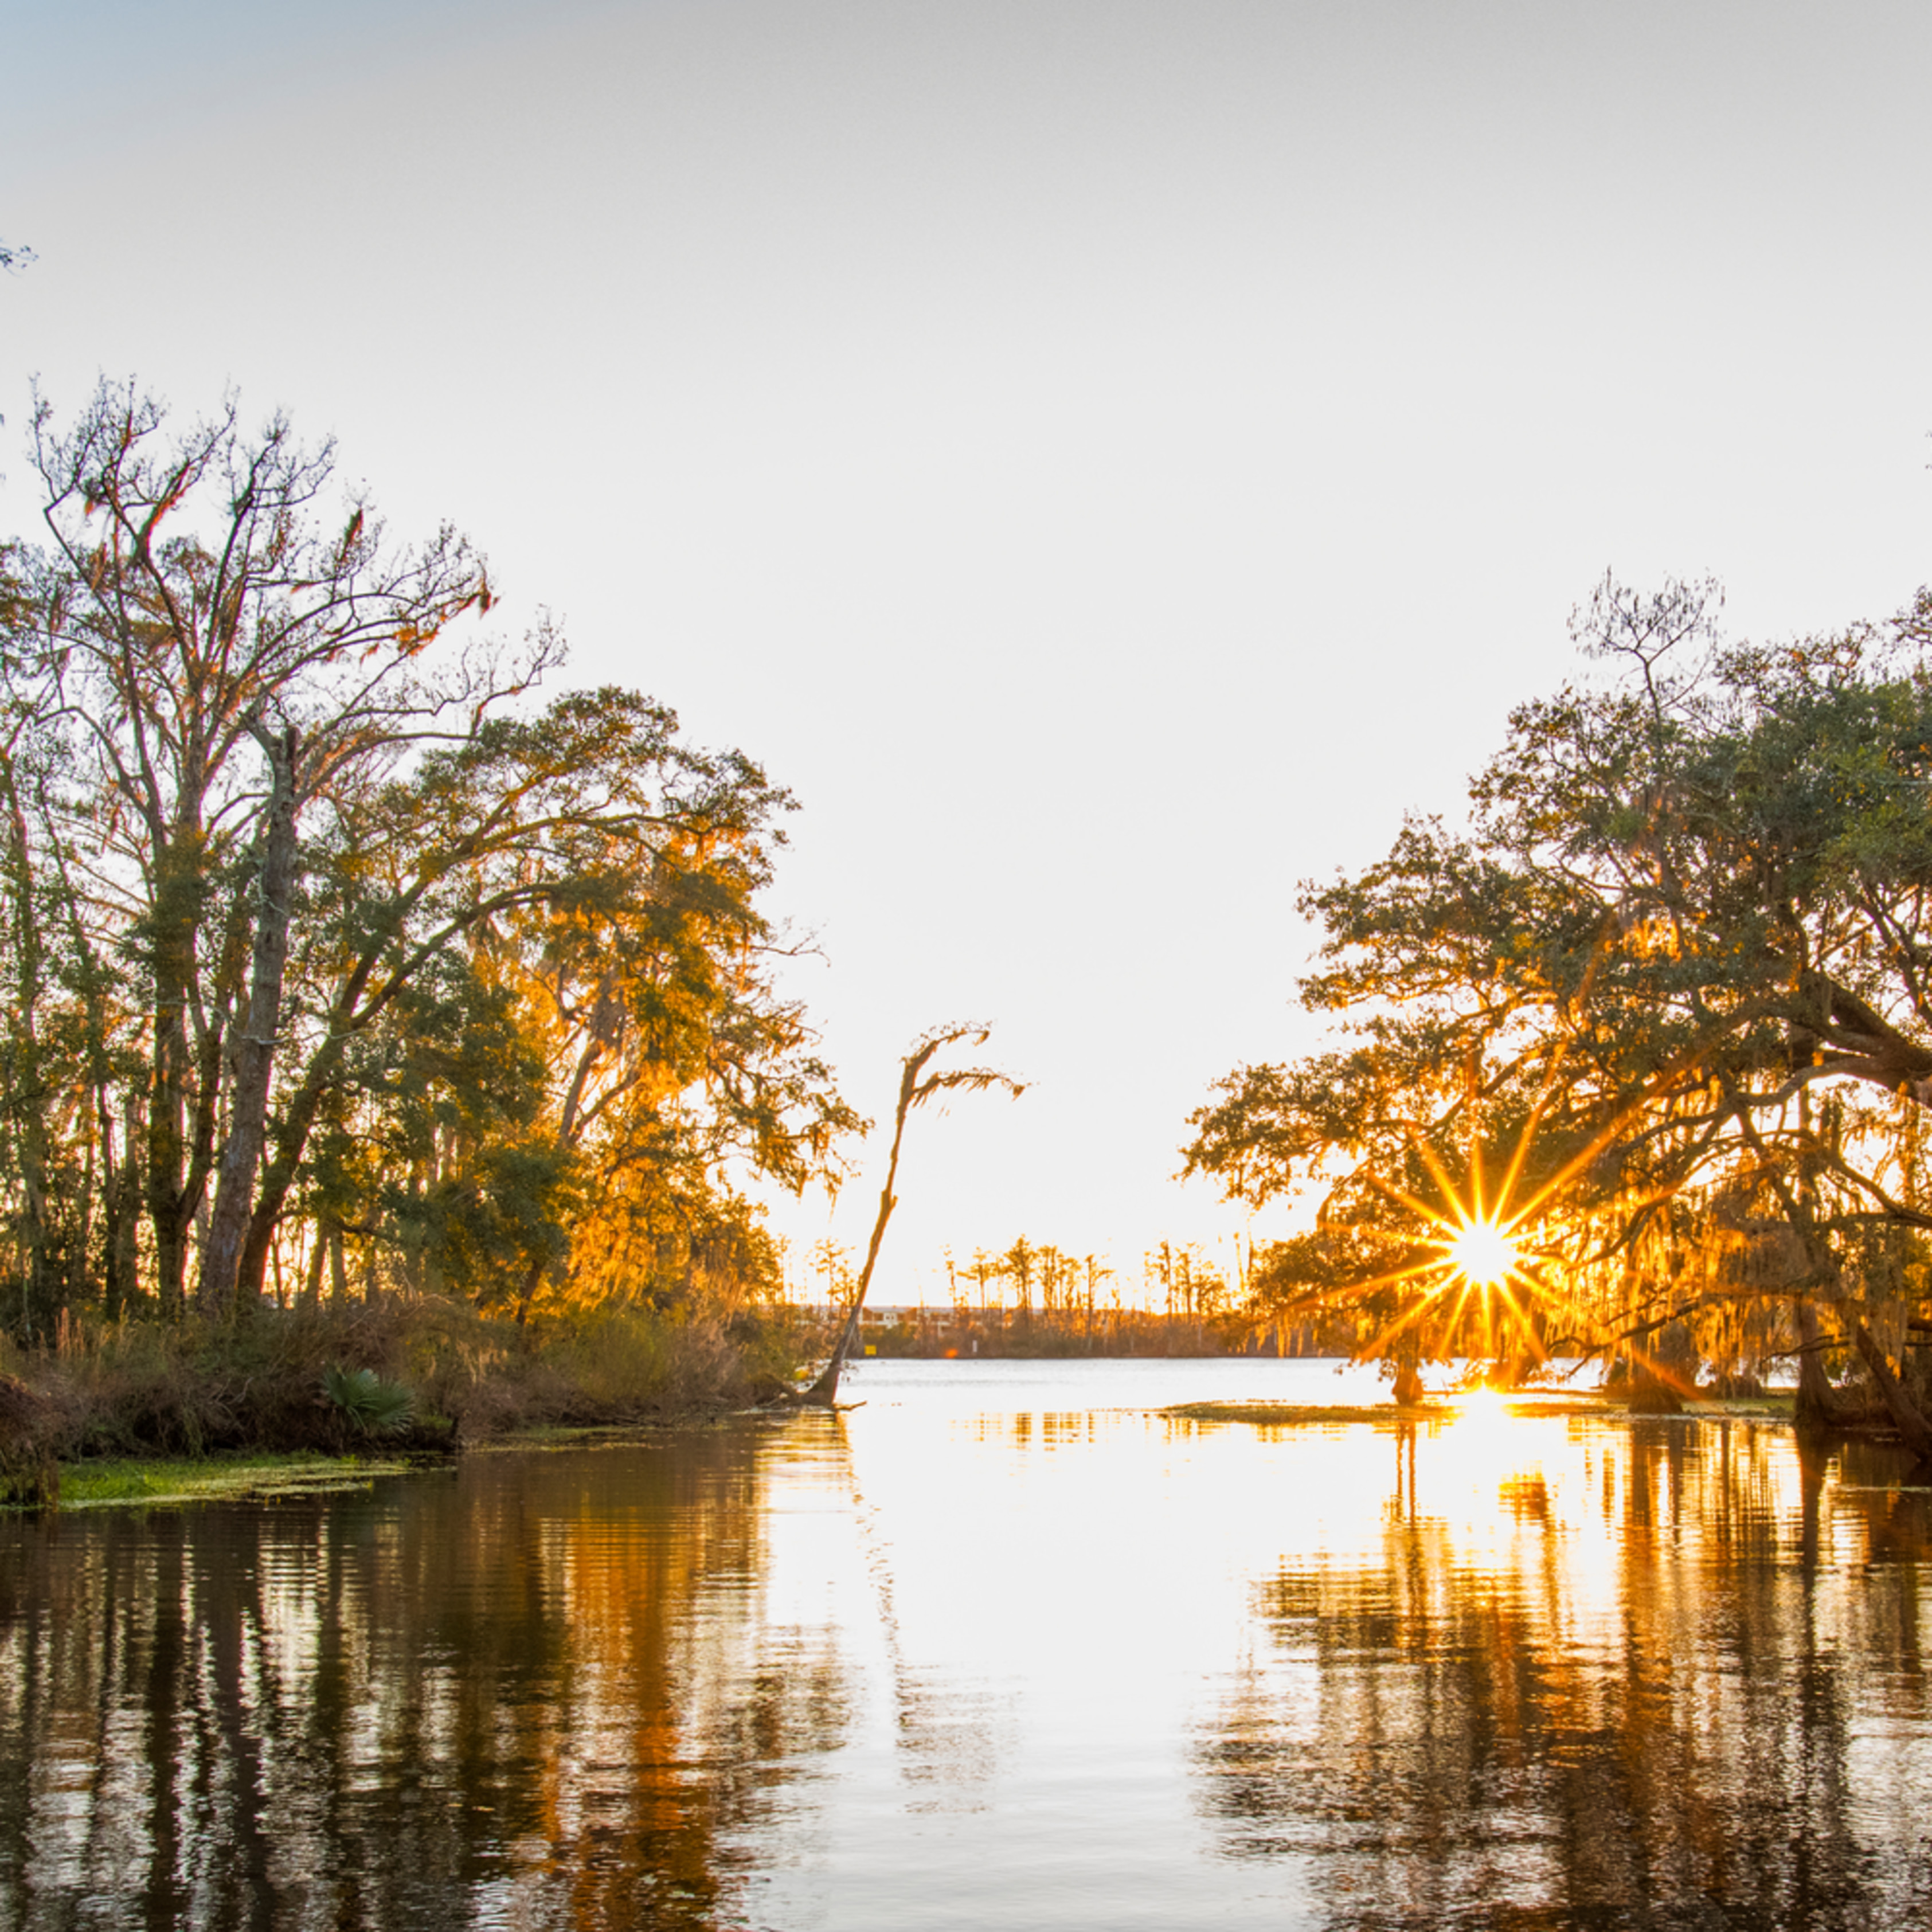 Andy crawford photography fairview riverside state park tchefuncte river 2 w1osof